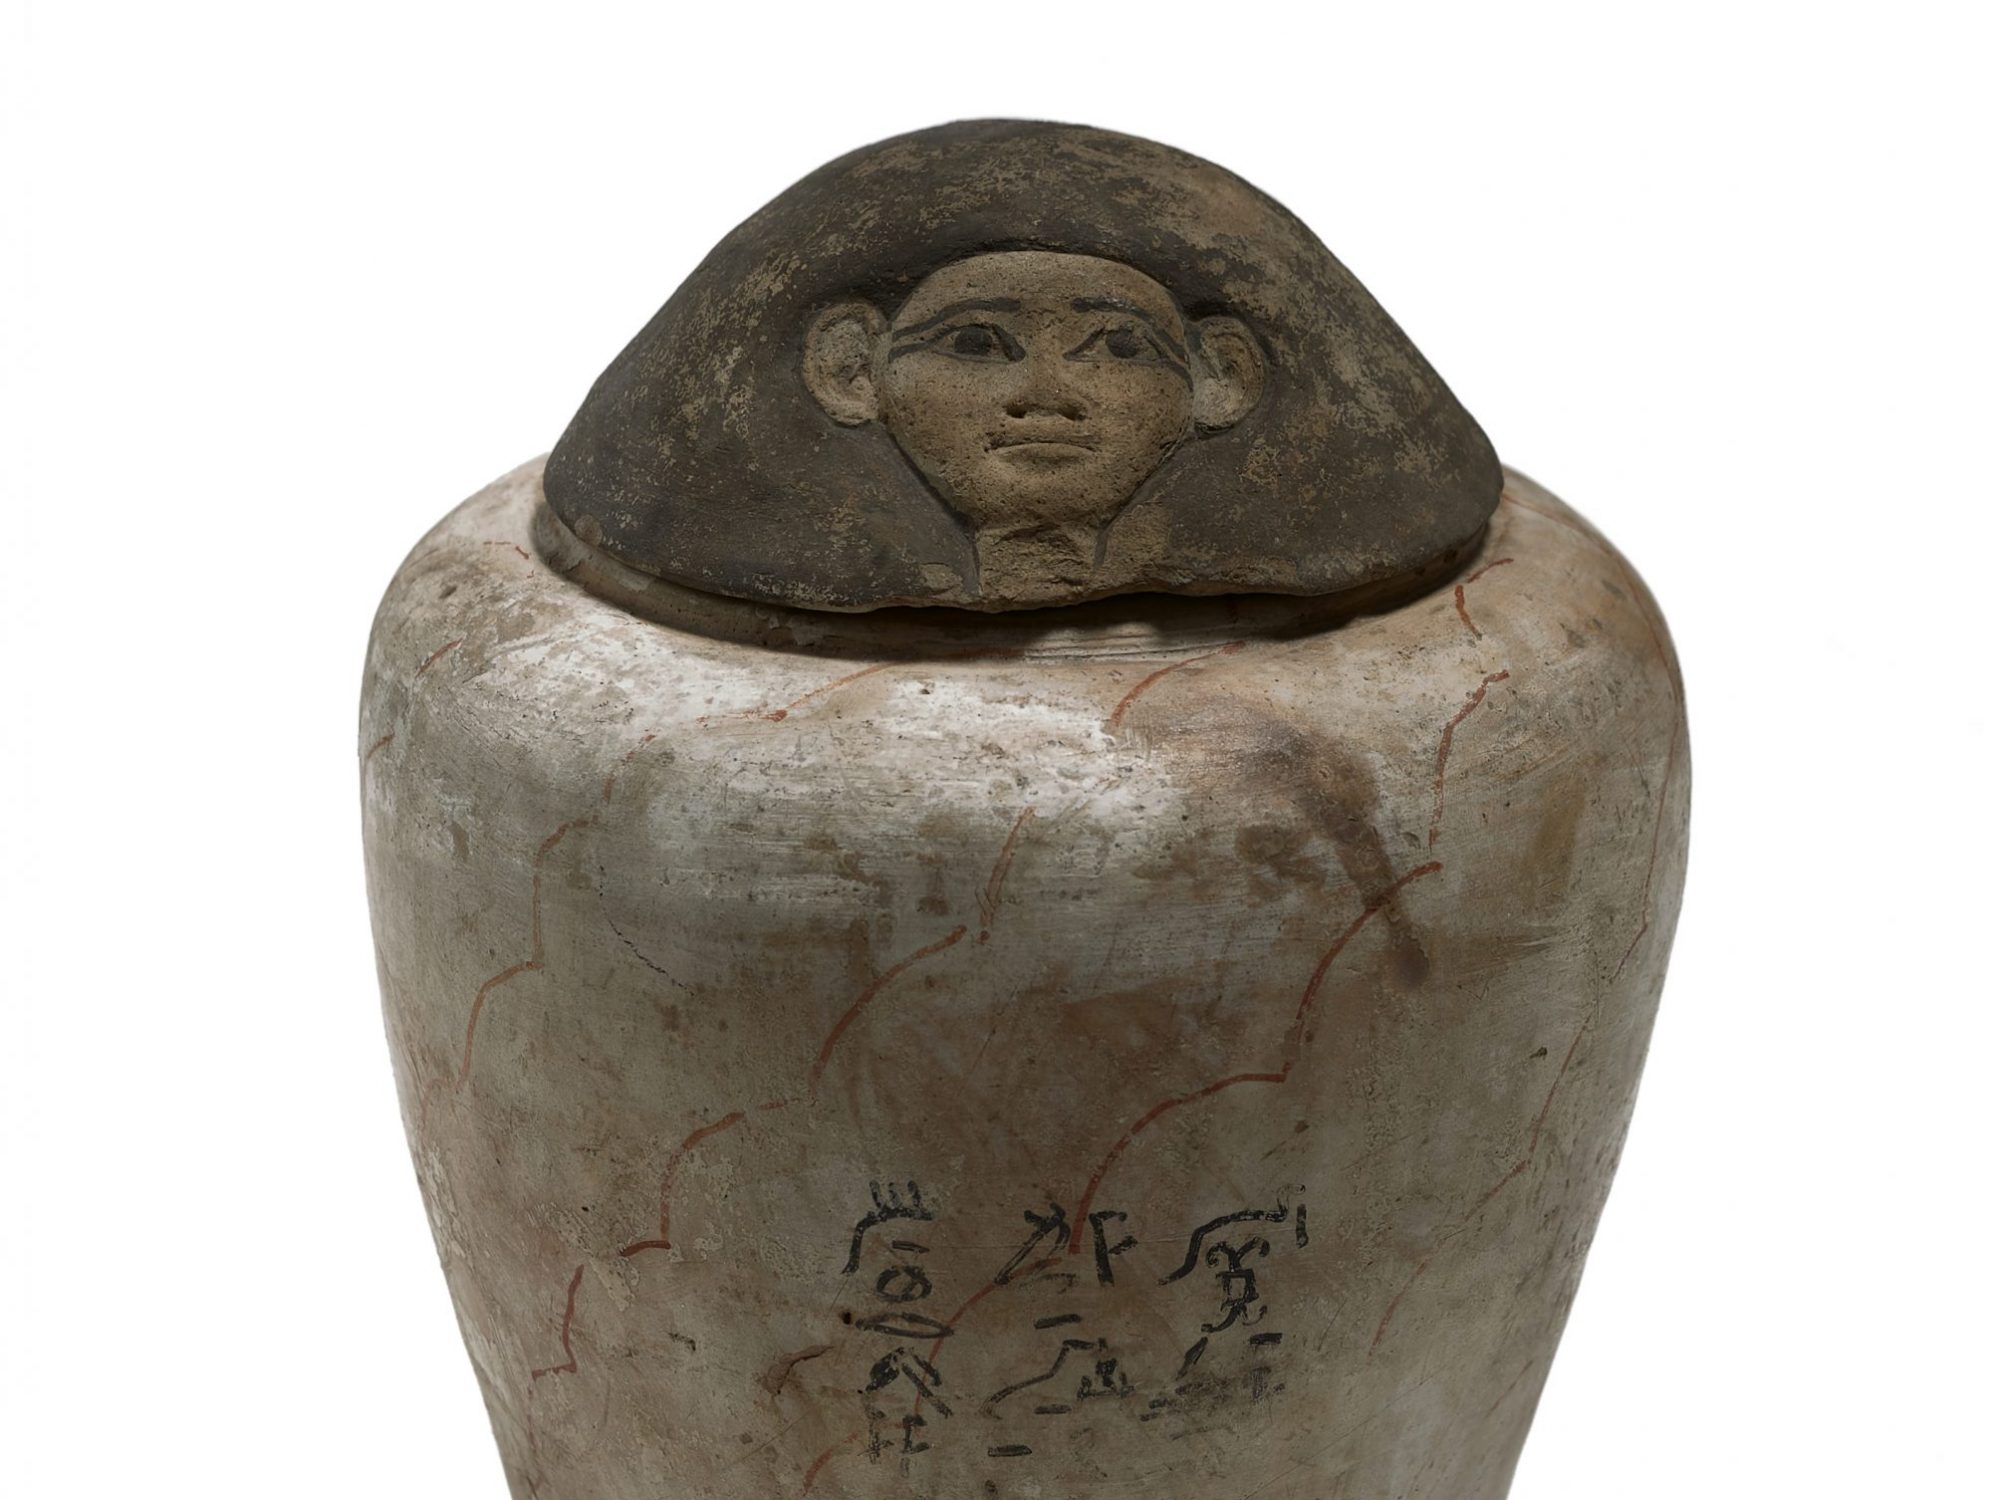 Brown jar with shape of head on top